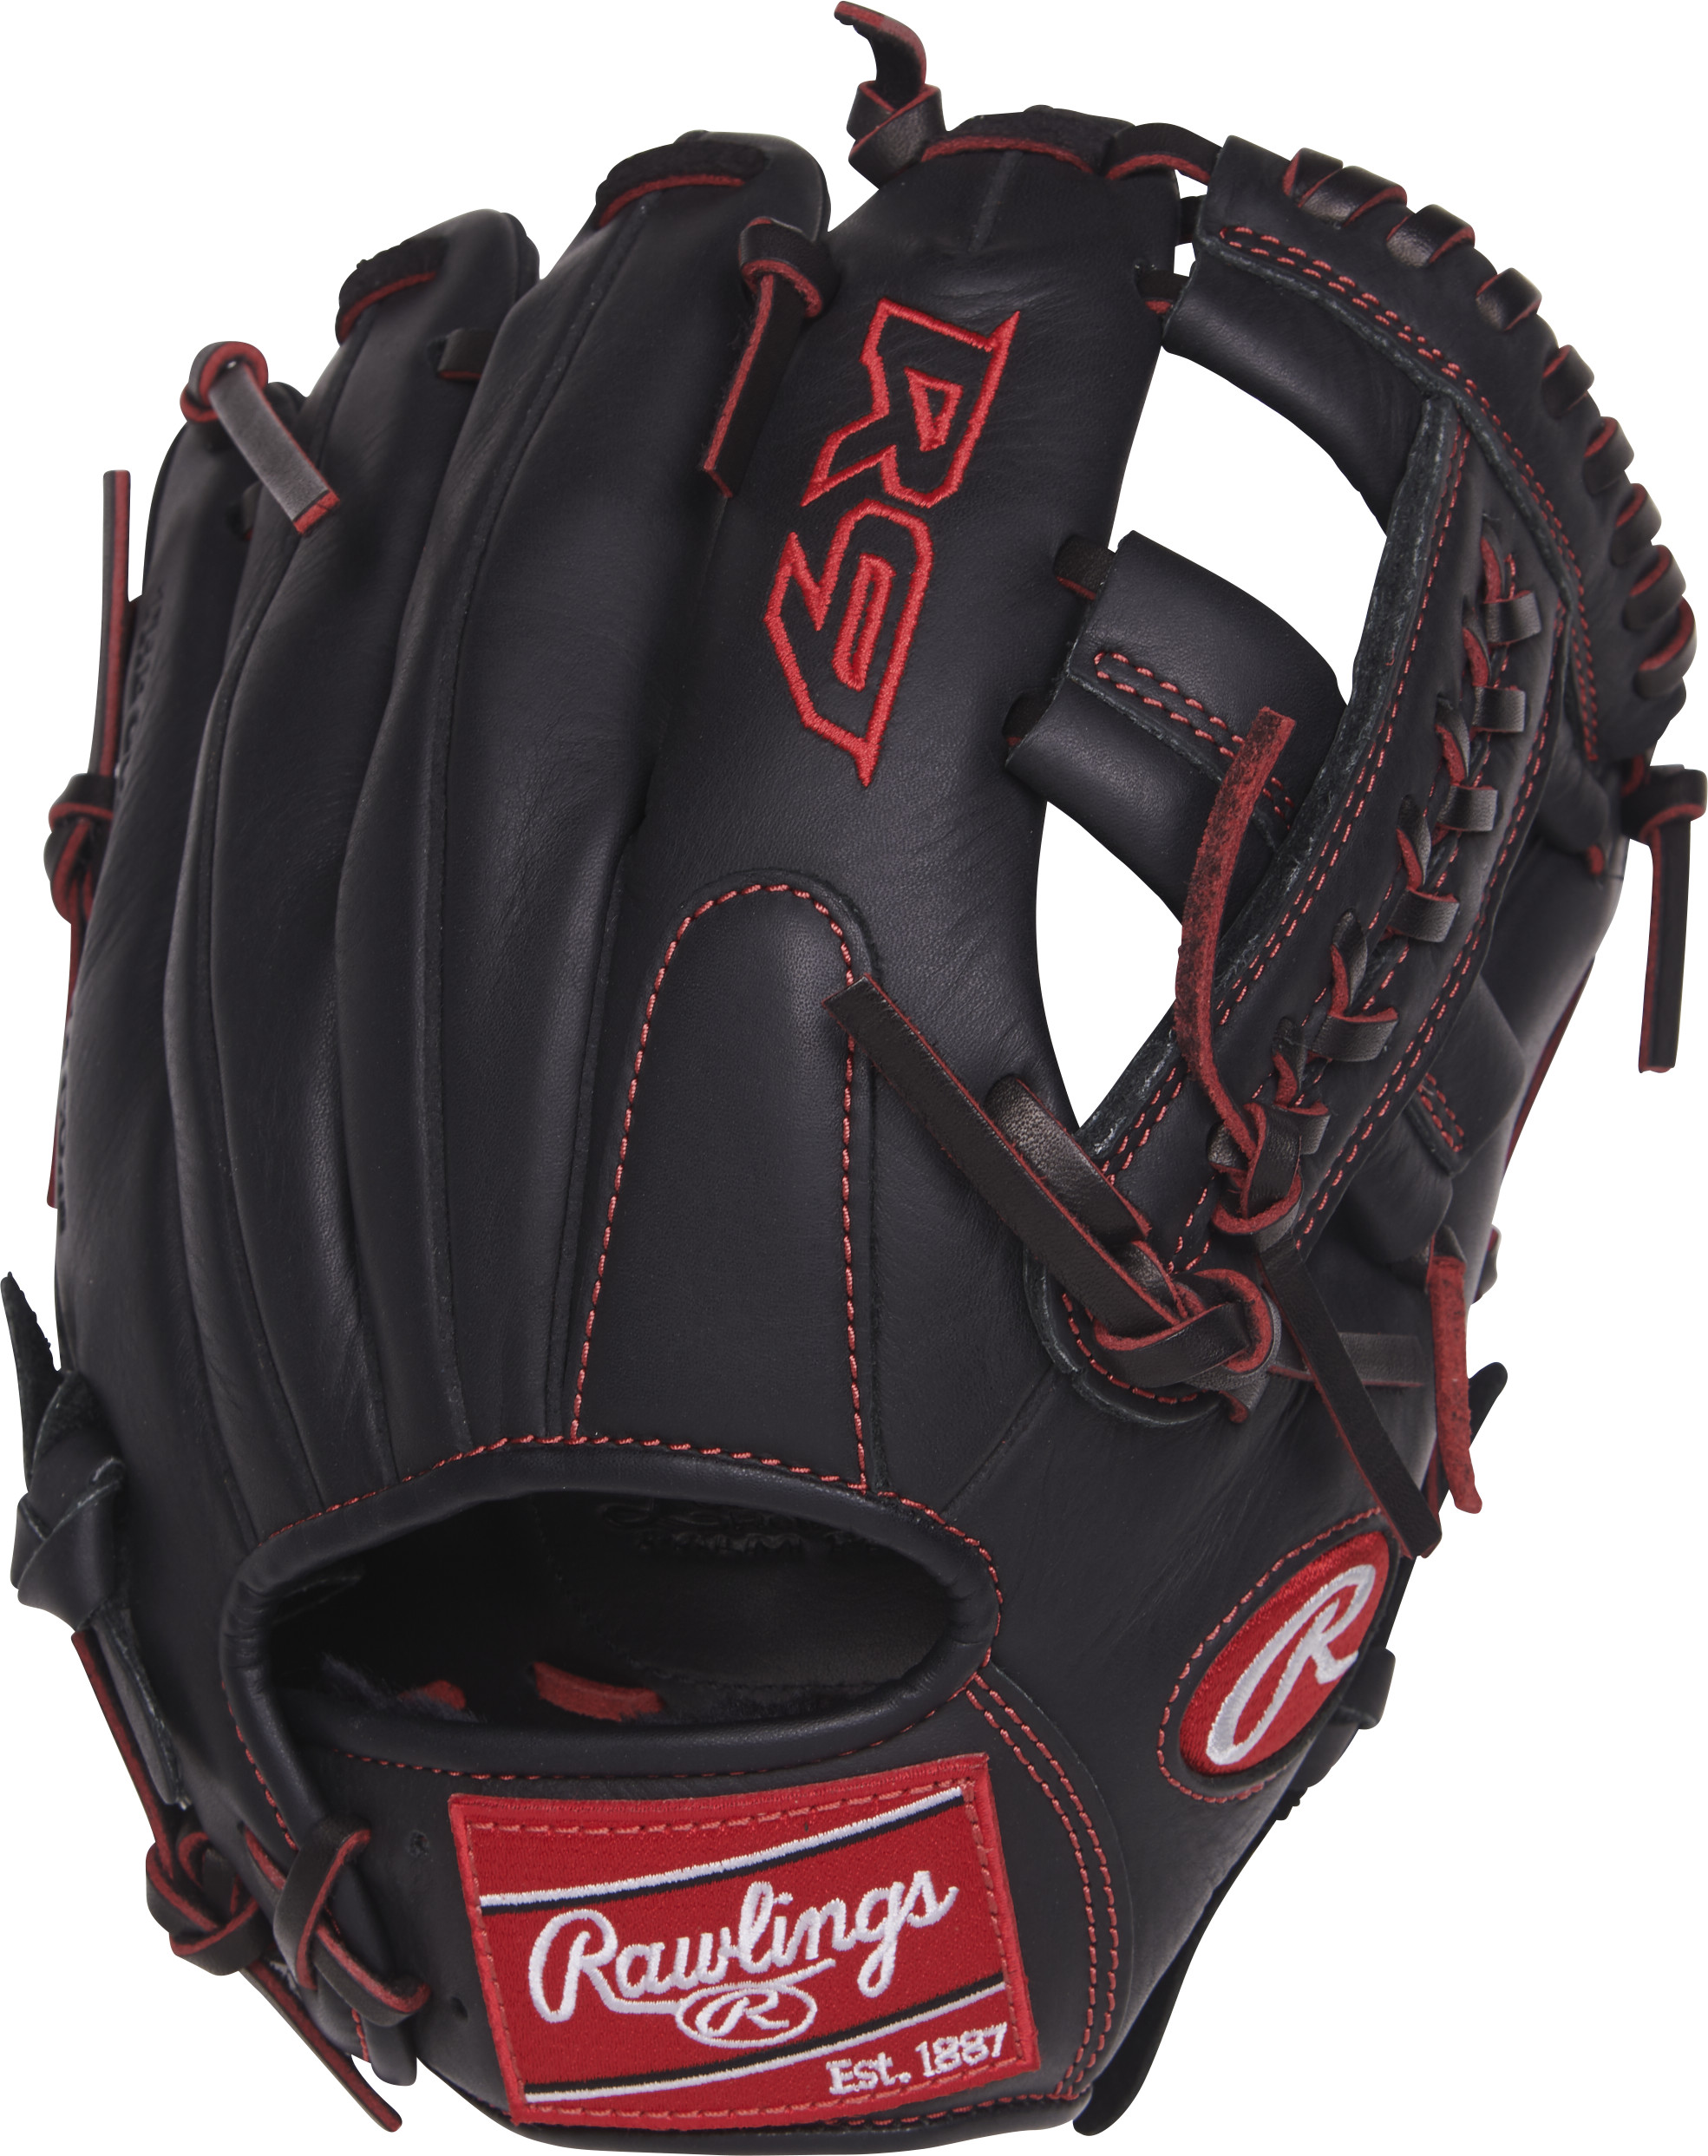 http://www.bestbatdeals.com/images/gloves/rawlings/R9YPT1-19B-2.jpg